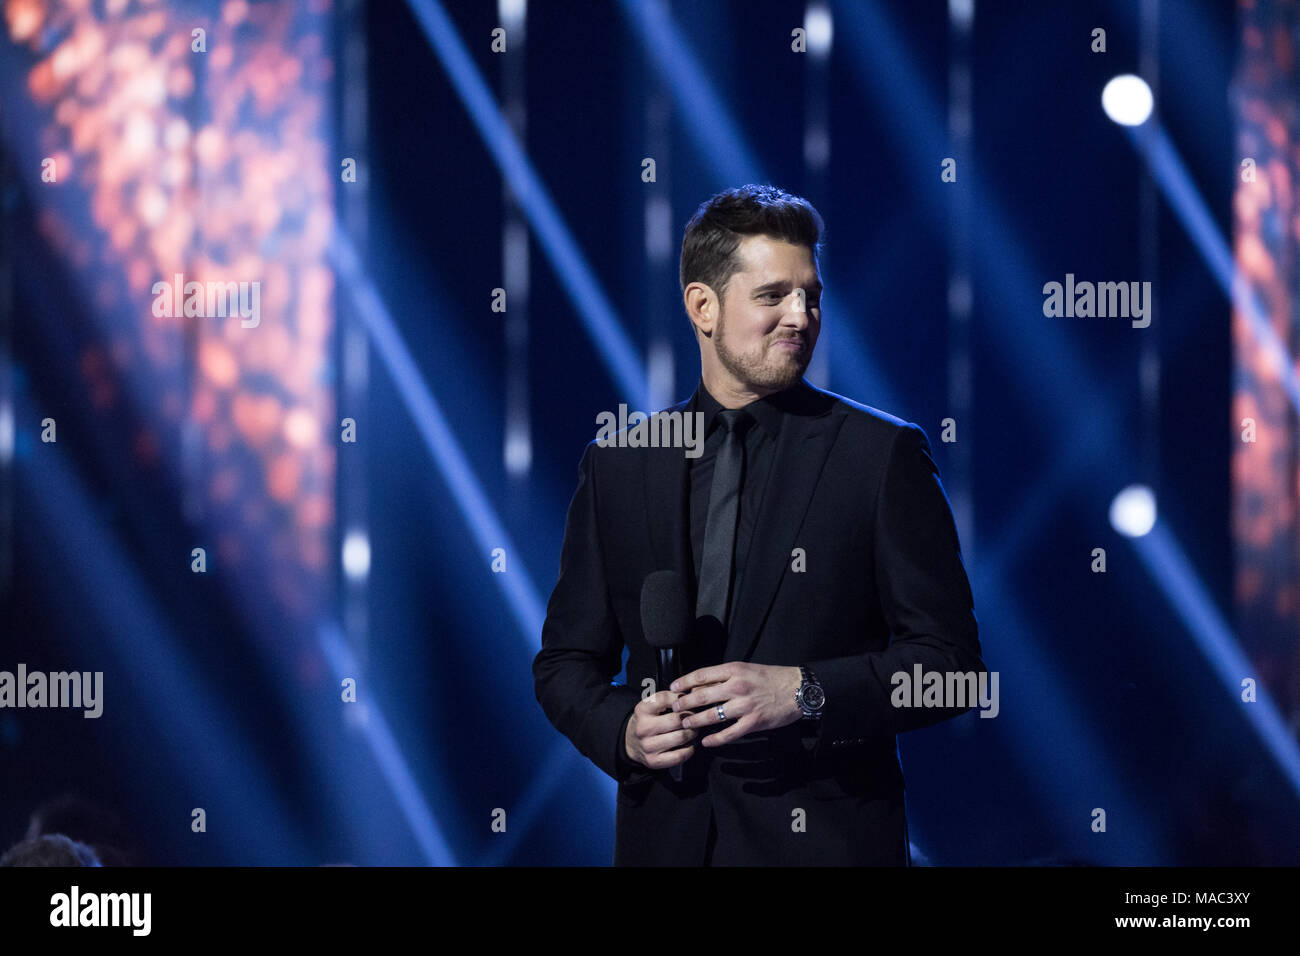 Vancouver, CANADA. 26th March, 2018. Host Michael Buble at the 2018 Juno Awards in Vancouver. Credit: Bobby Singh/fohphoto - Stock Image